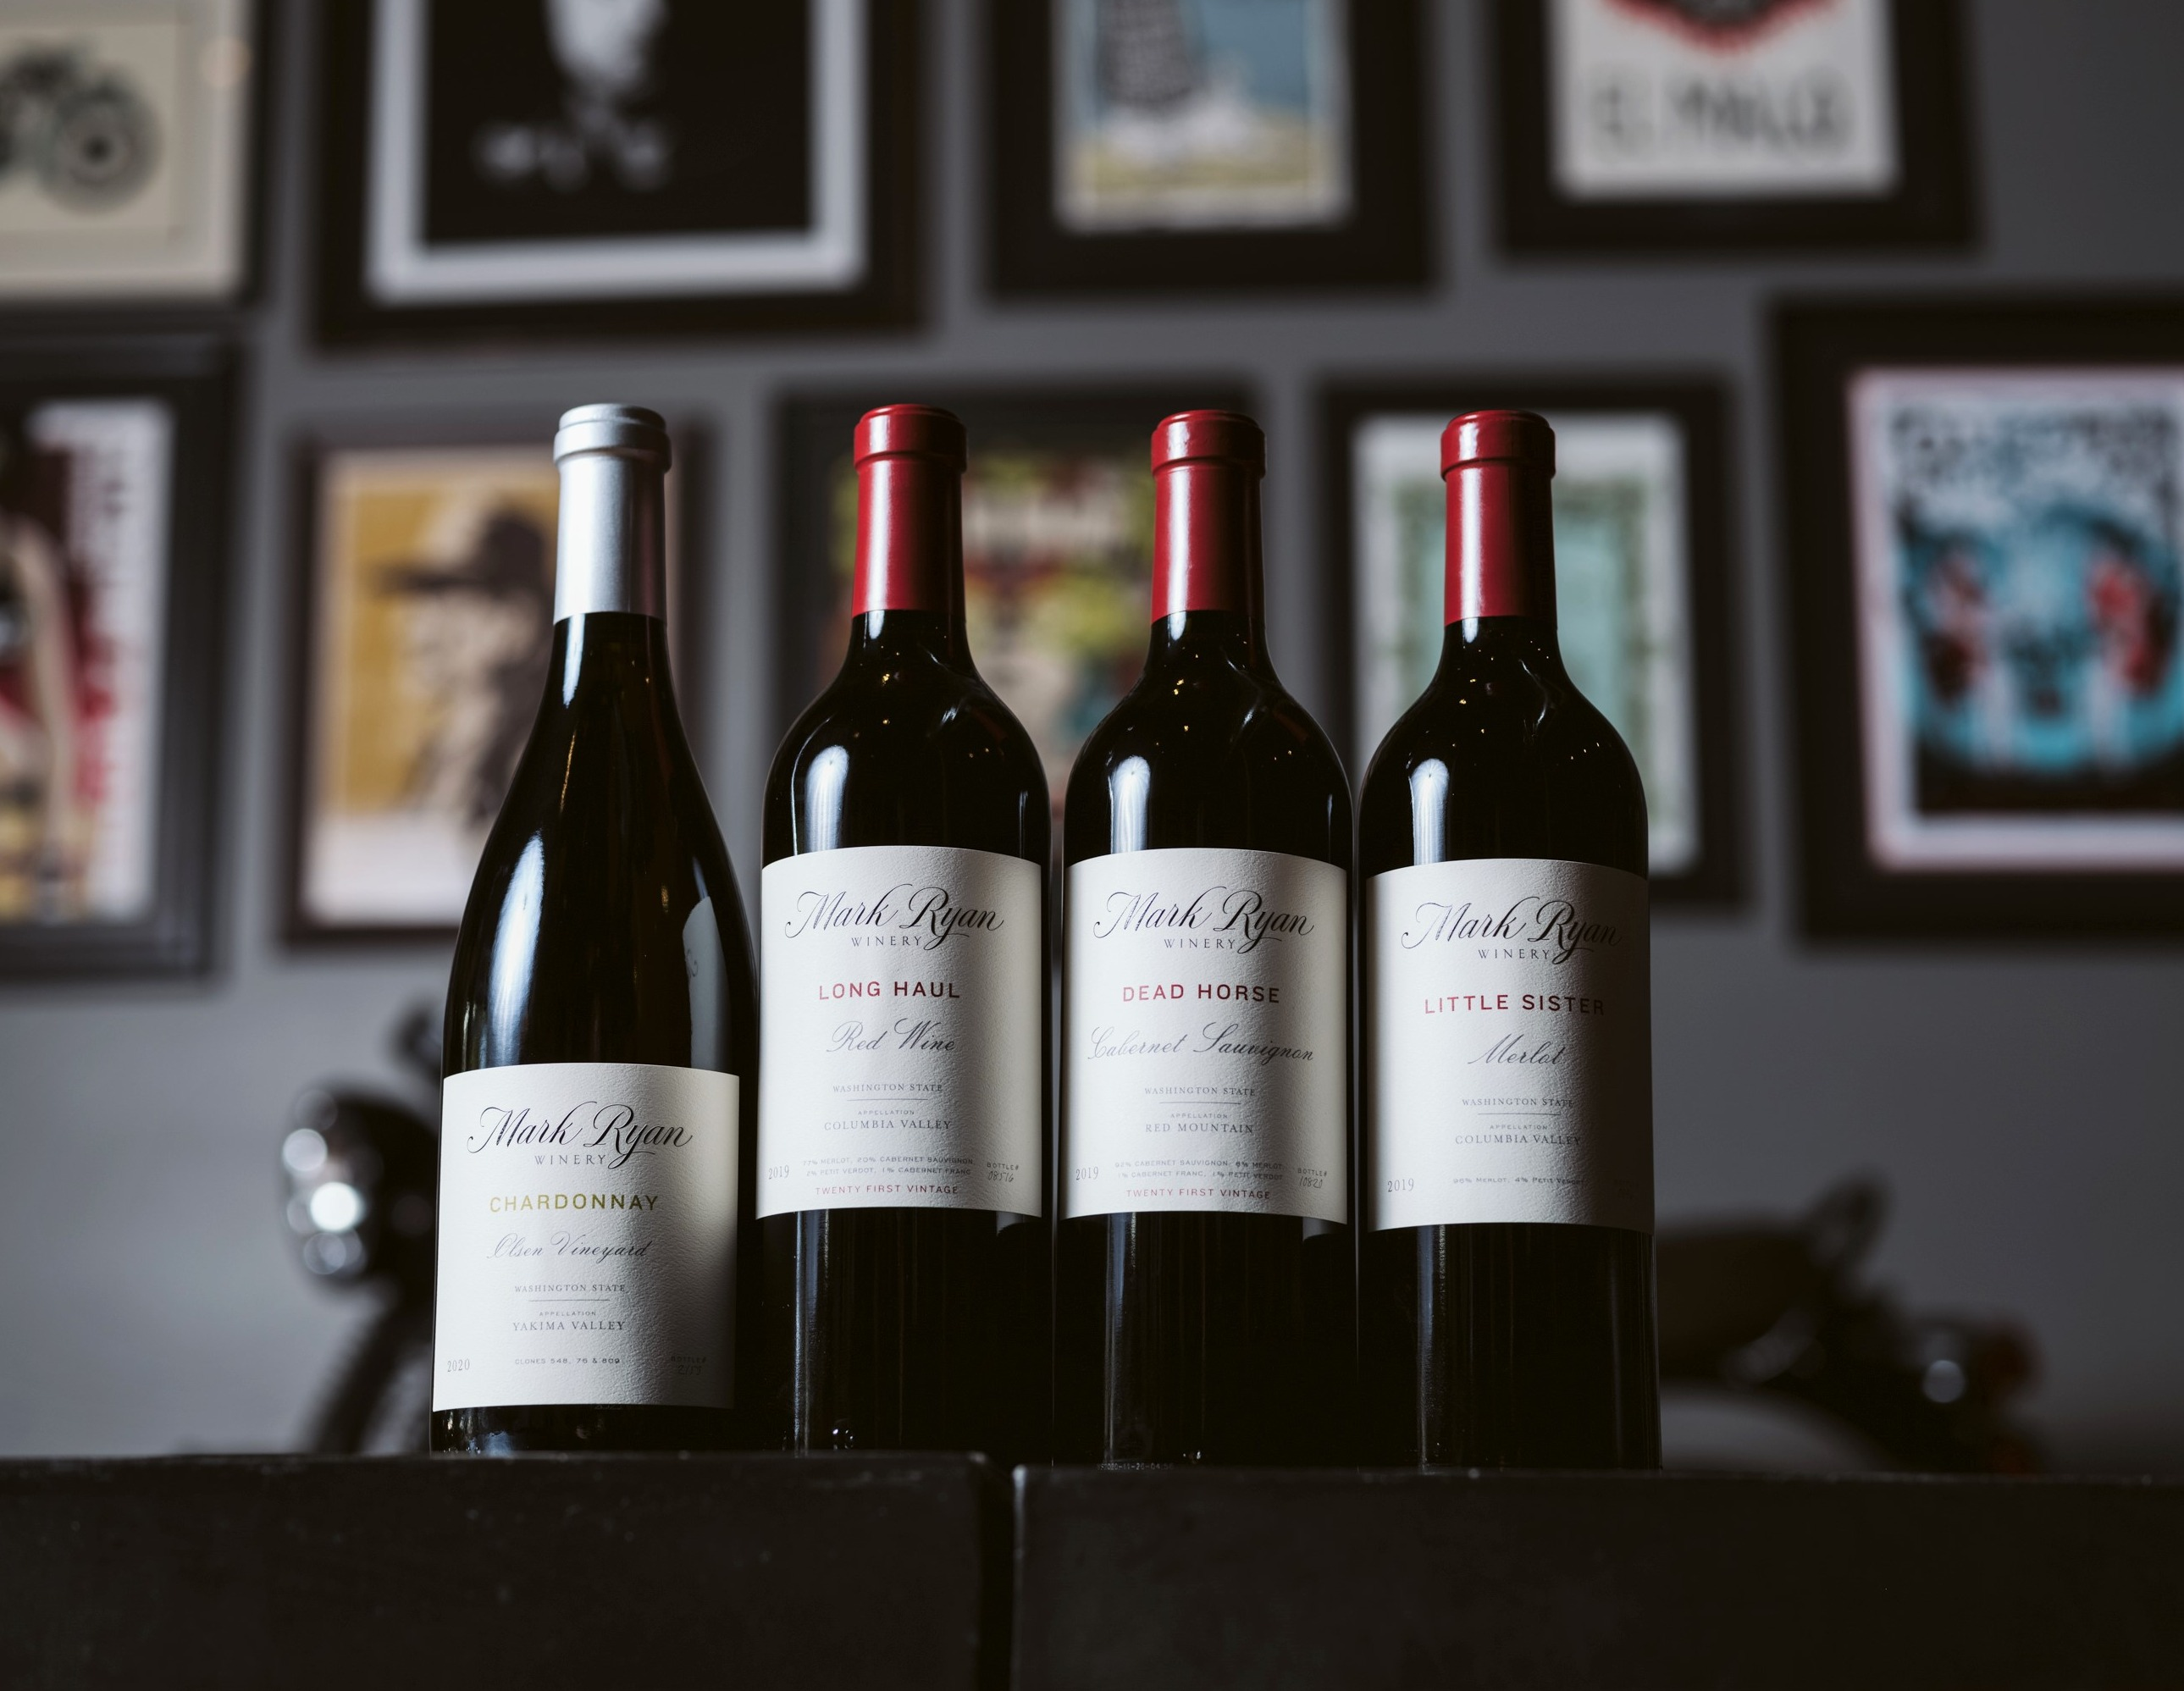 Lineup of Mark Ryan wines